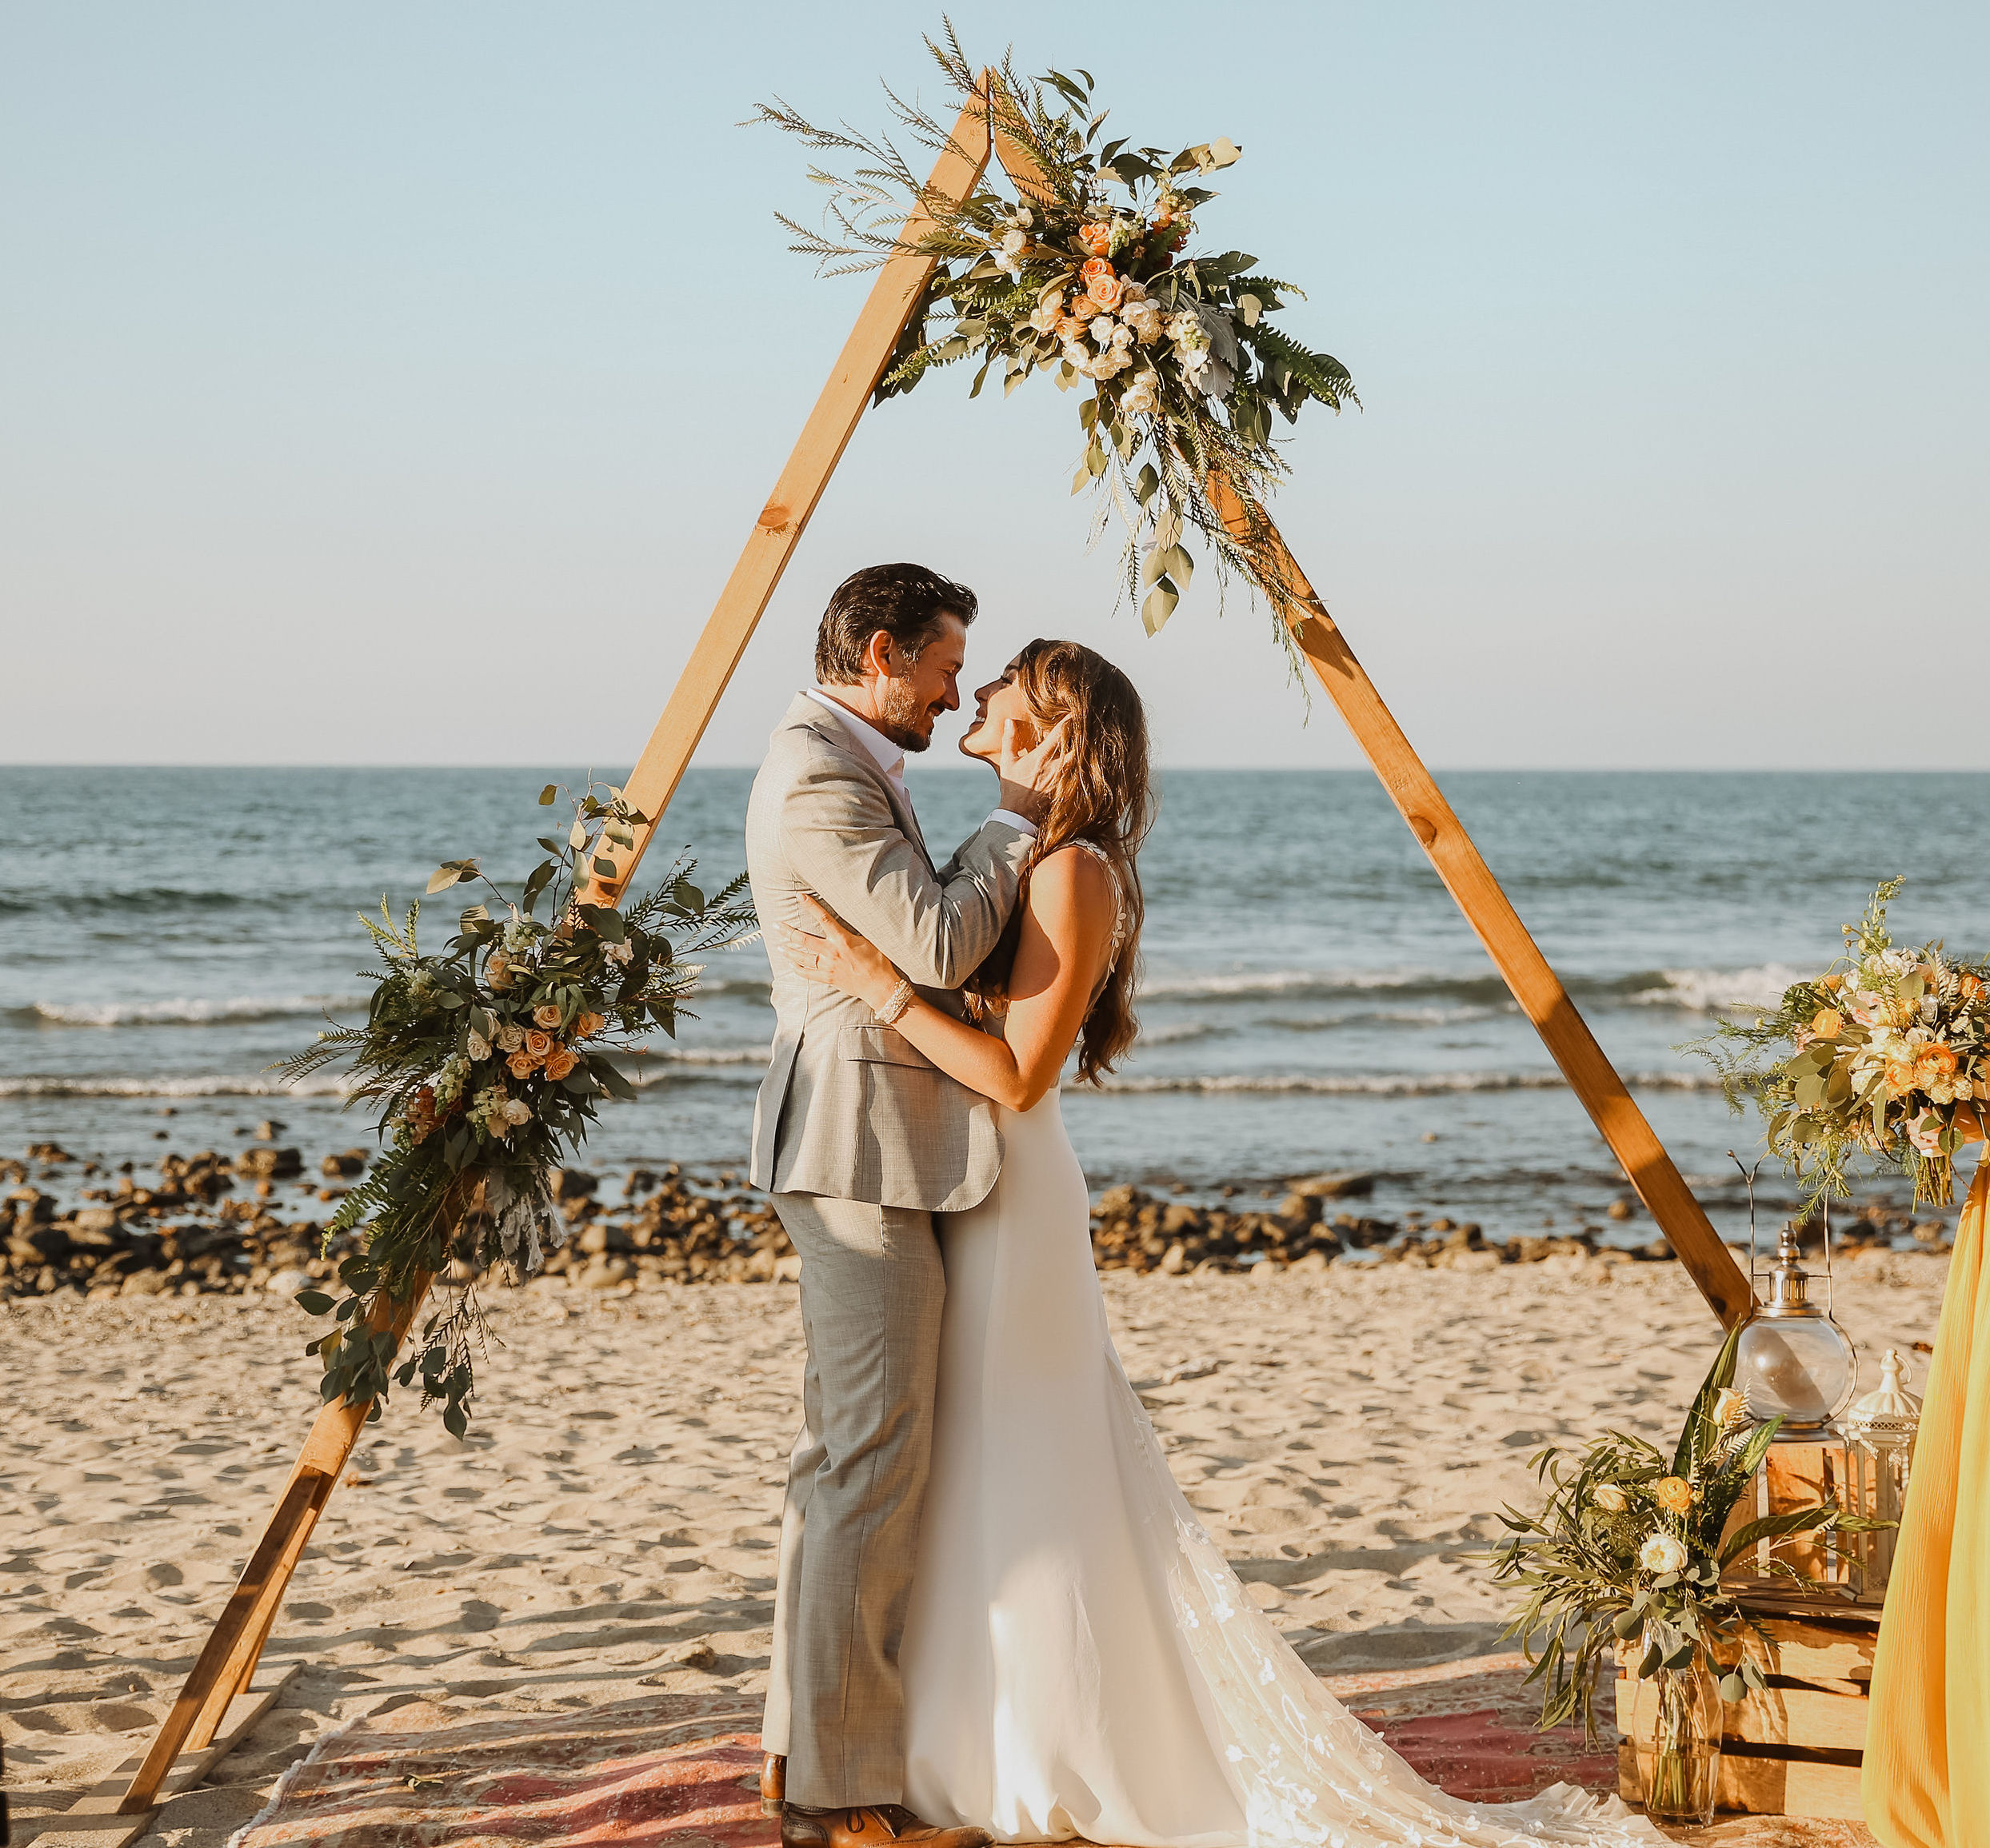 Jamie & Andrew got married in the magical little bohemian town of Sayulita, Mexico. Andrew had taken Jamie there for Christmas a couple years prior and they both immediately knew - this was the place. Andrew's mom passed away a few years ago, and when the venue's only availability happened to be on her birthday, the couple knew it was meant to be. The vibe was barefoot & romantic, with lots of wild greens and garden roses. They flew in rugs from Morocco for the aisle, Jamie's brother officiated, and they each had 3 maids of honor & groomsmen. Throw in a donkey named Leche and popsicles & fresh coconuts for cocktail hour, and the couple had their unconventional, yet perfect day.